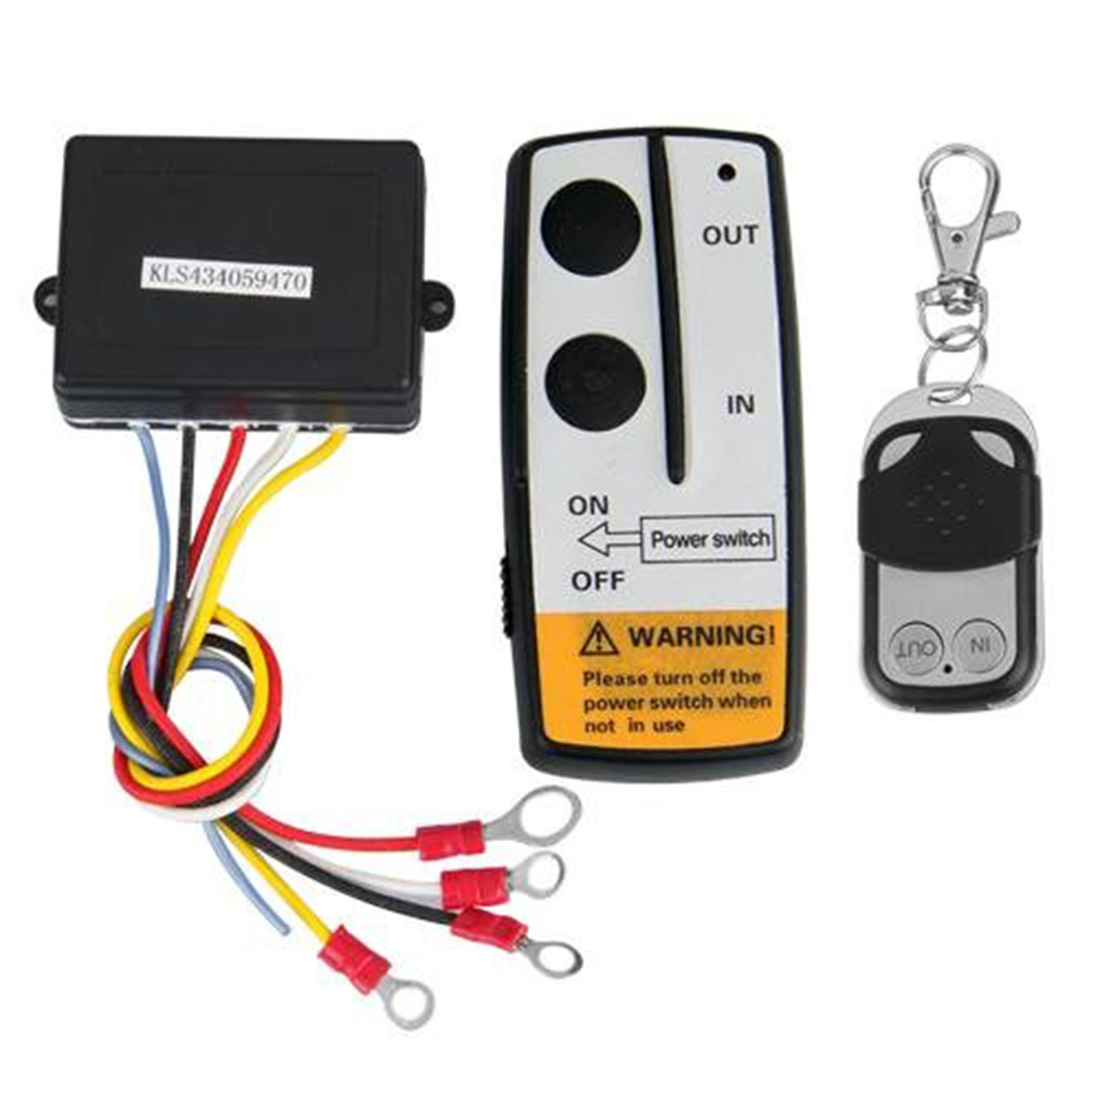 Marsnaska Universal Wireless Winch Remote Control Kit 12V 50ft 2 Remotes With Indicator light Car Detector For Truck Jeep ATV SU